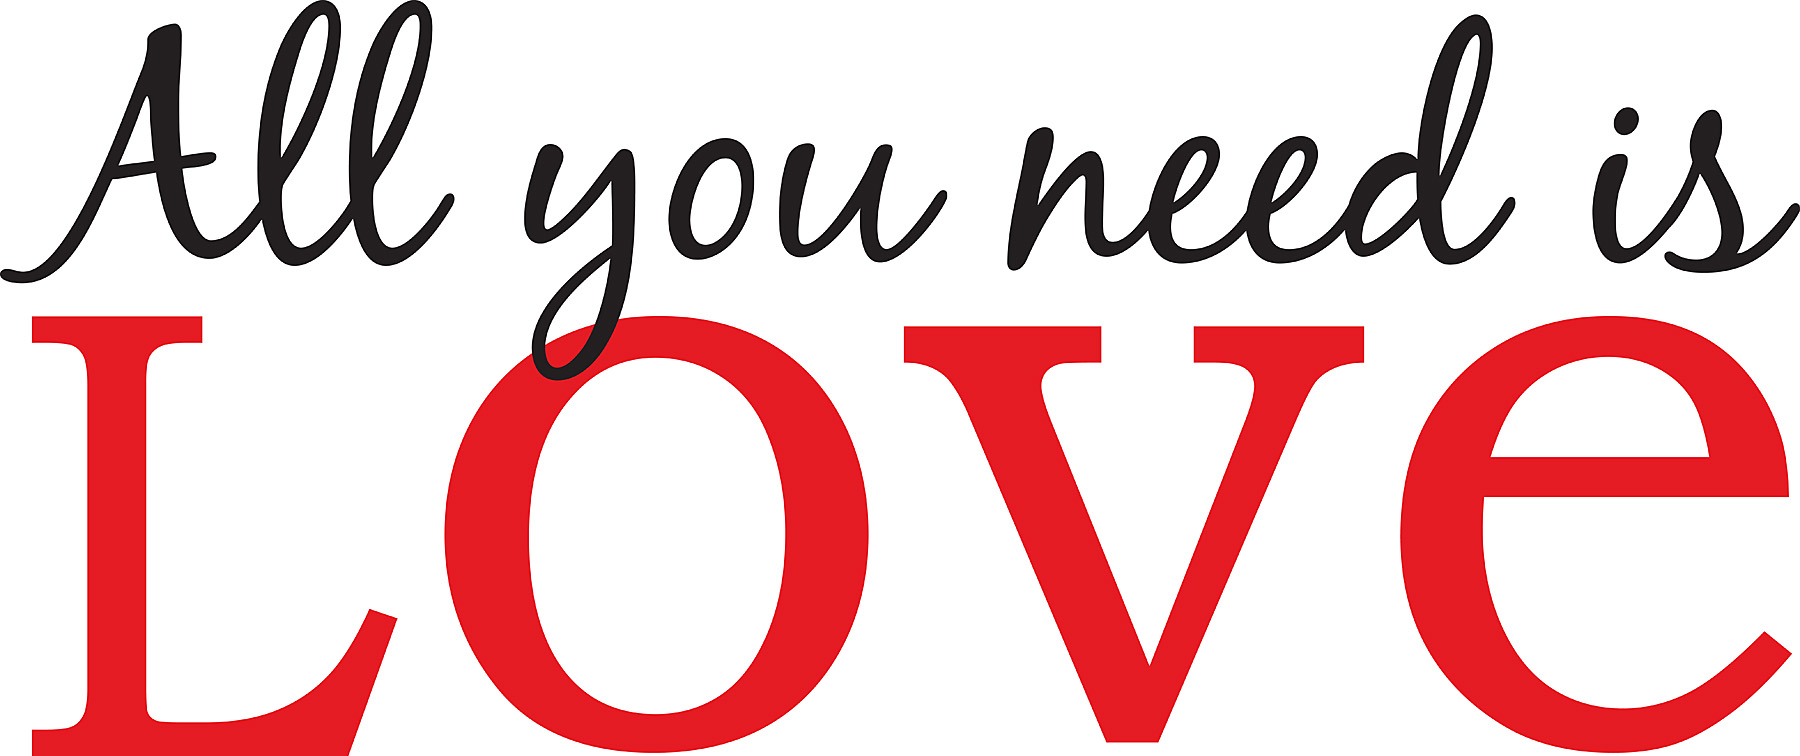 All You Need Is Love Quote Wall Art Sticker.